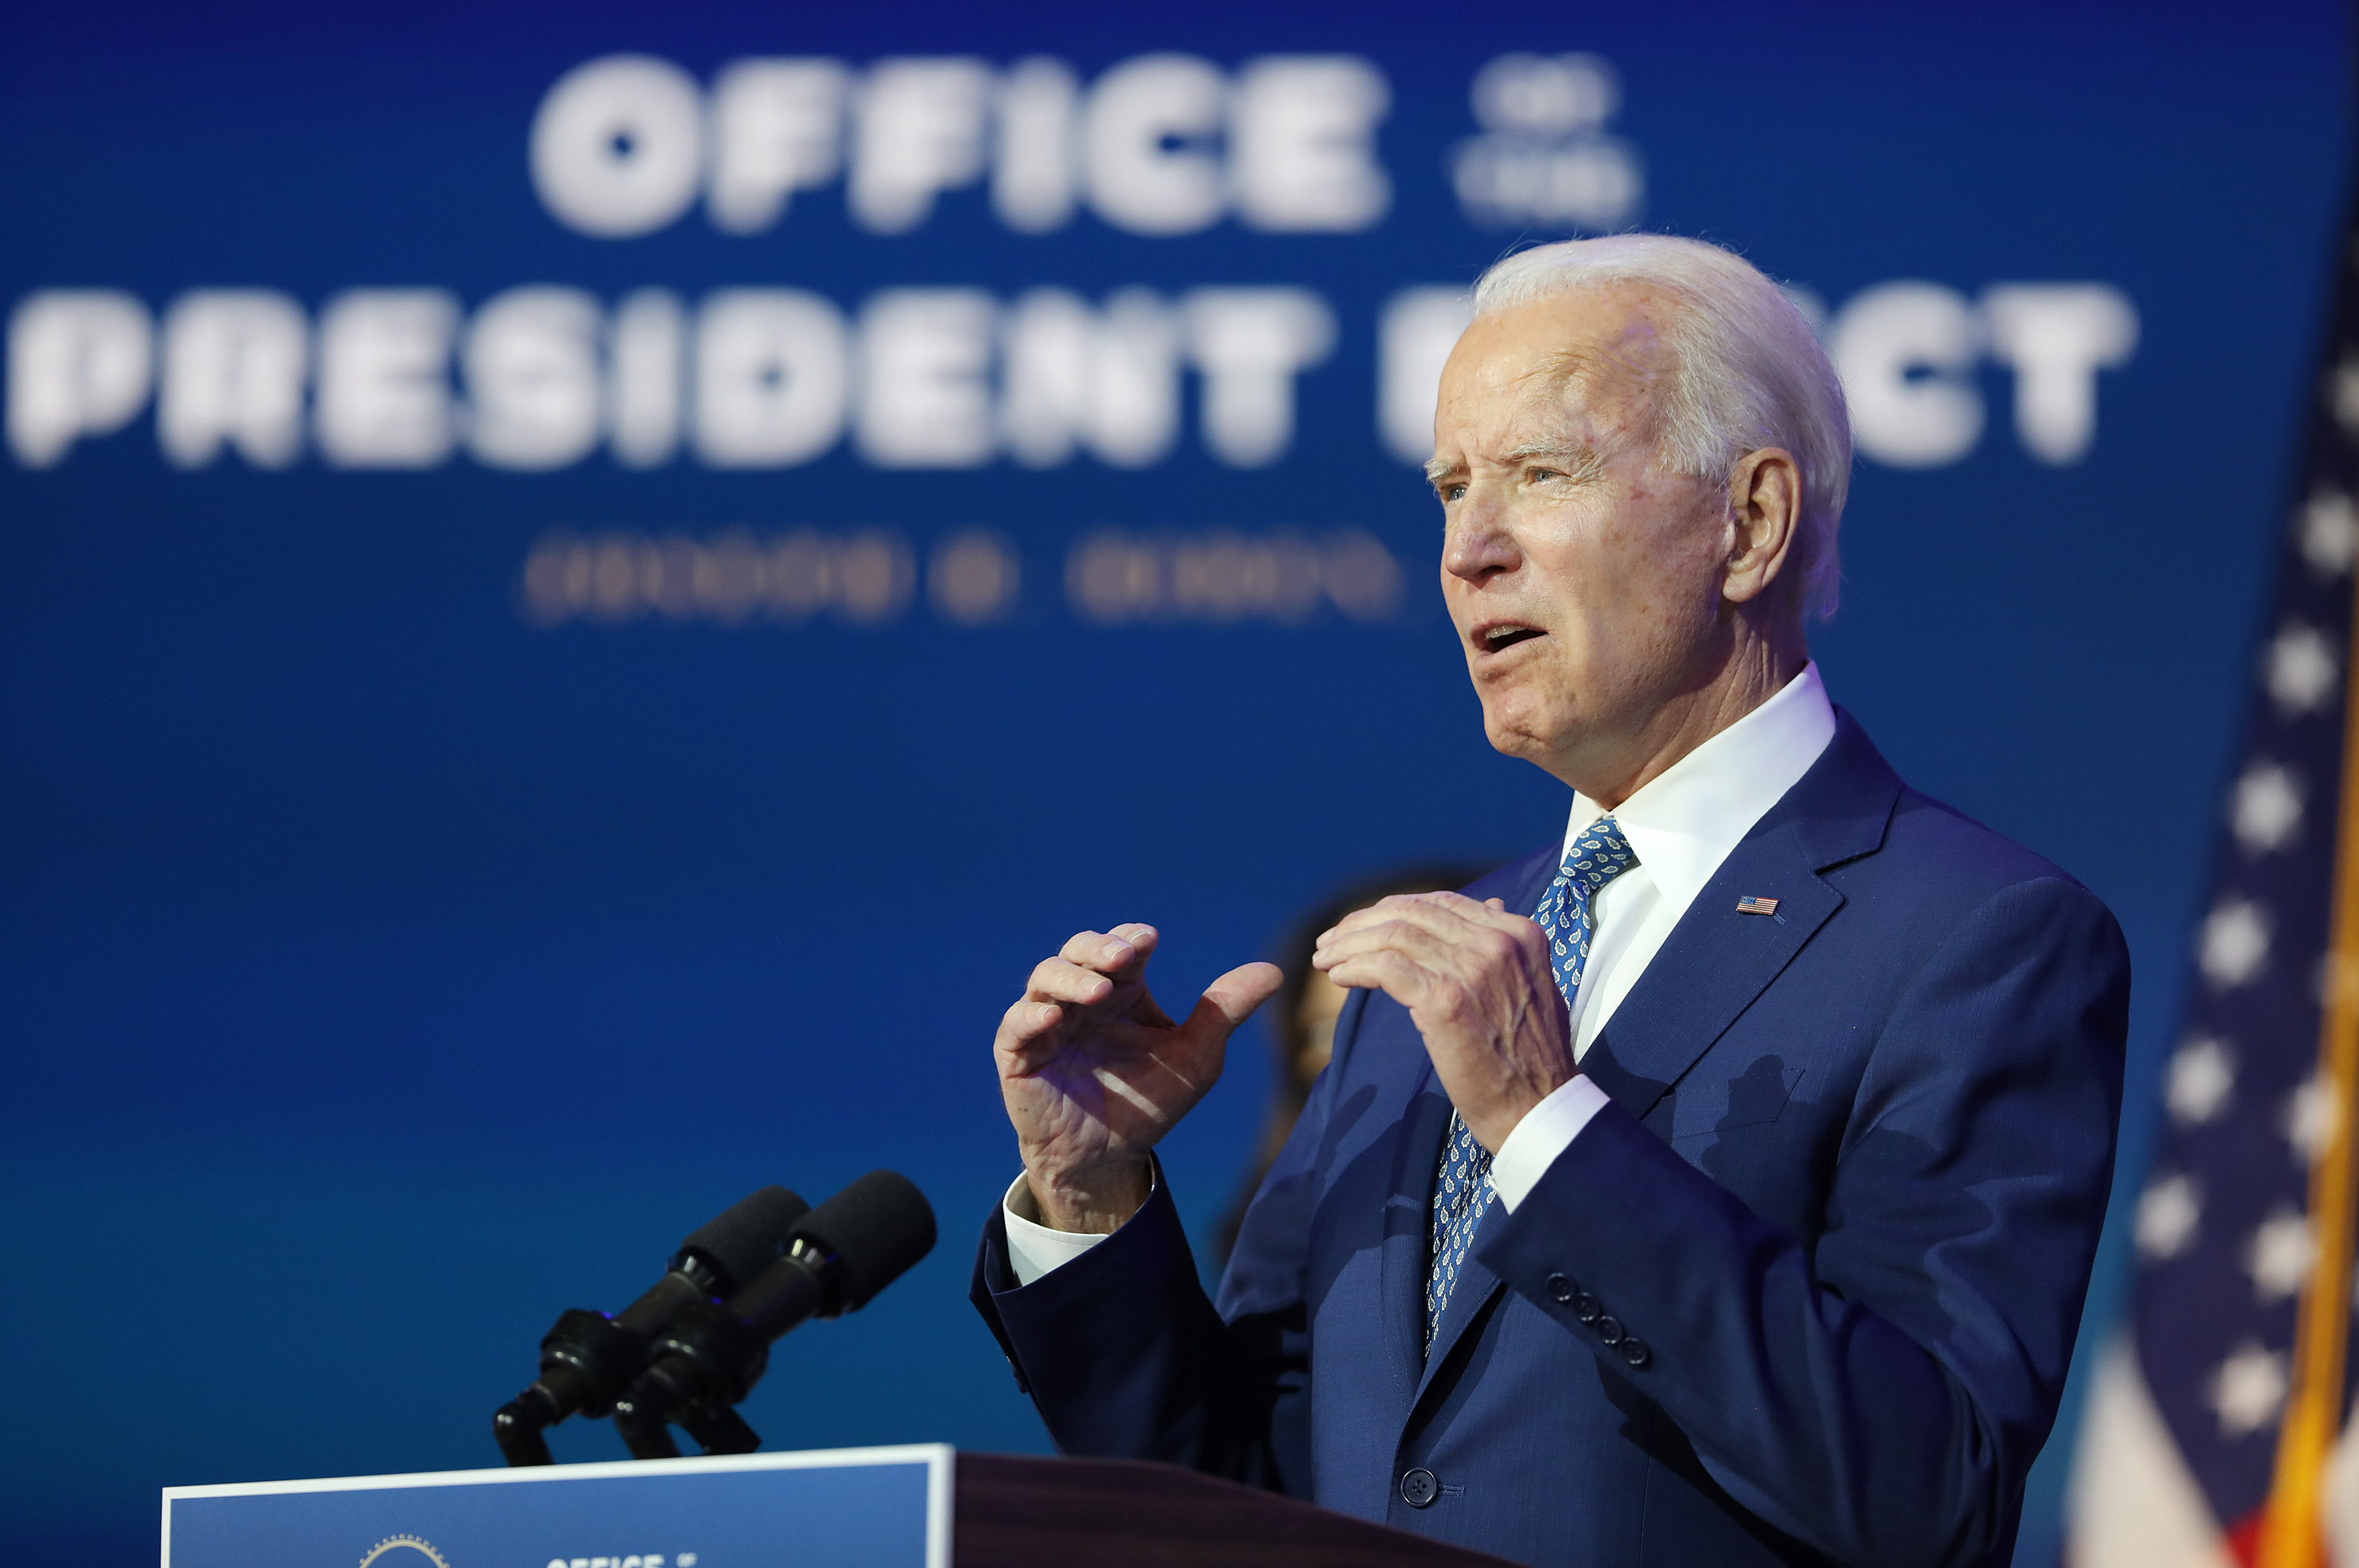 Biden Plan To Lower Medicare Eligibility Age Faces Hostility From Hospitals  : Shots - Health News : NPR